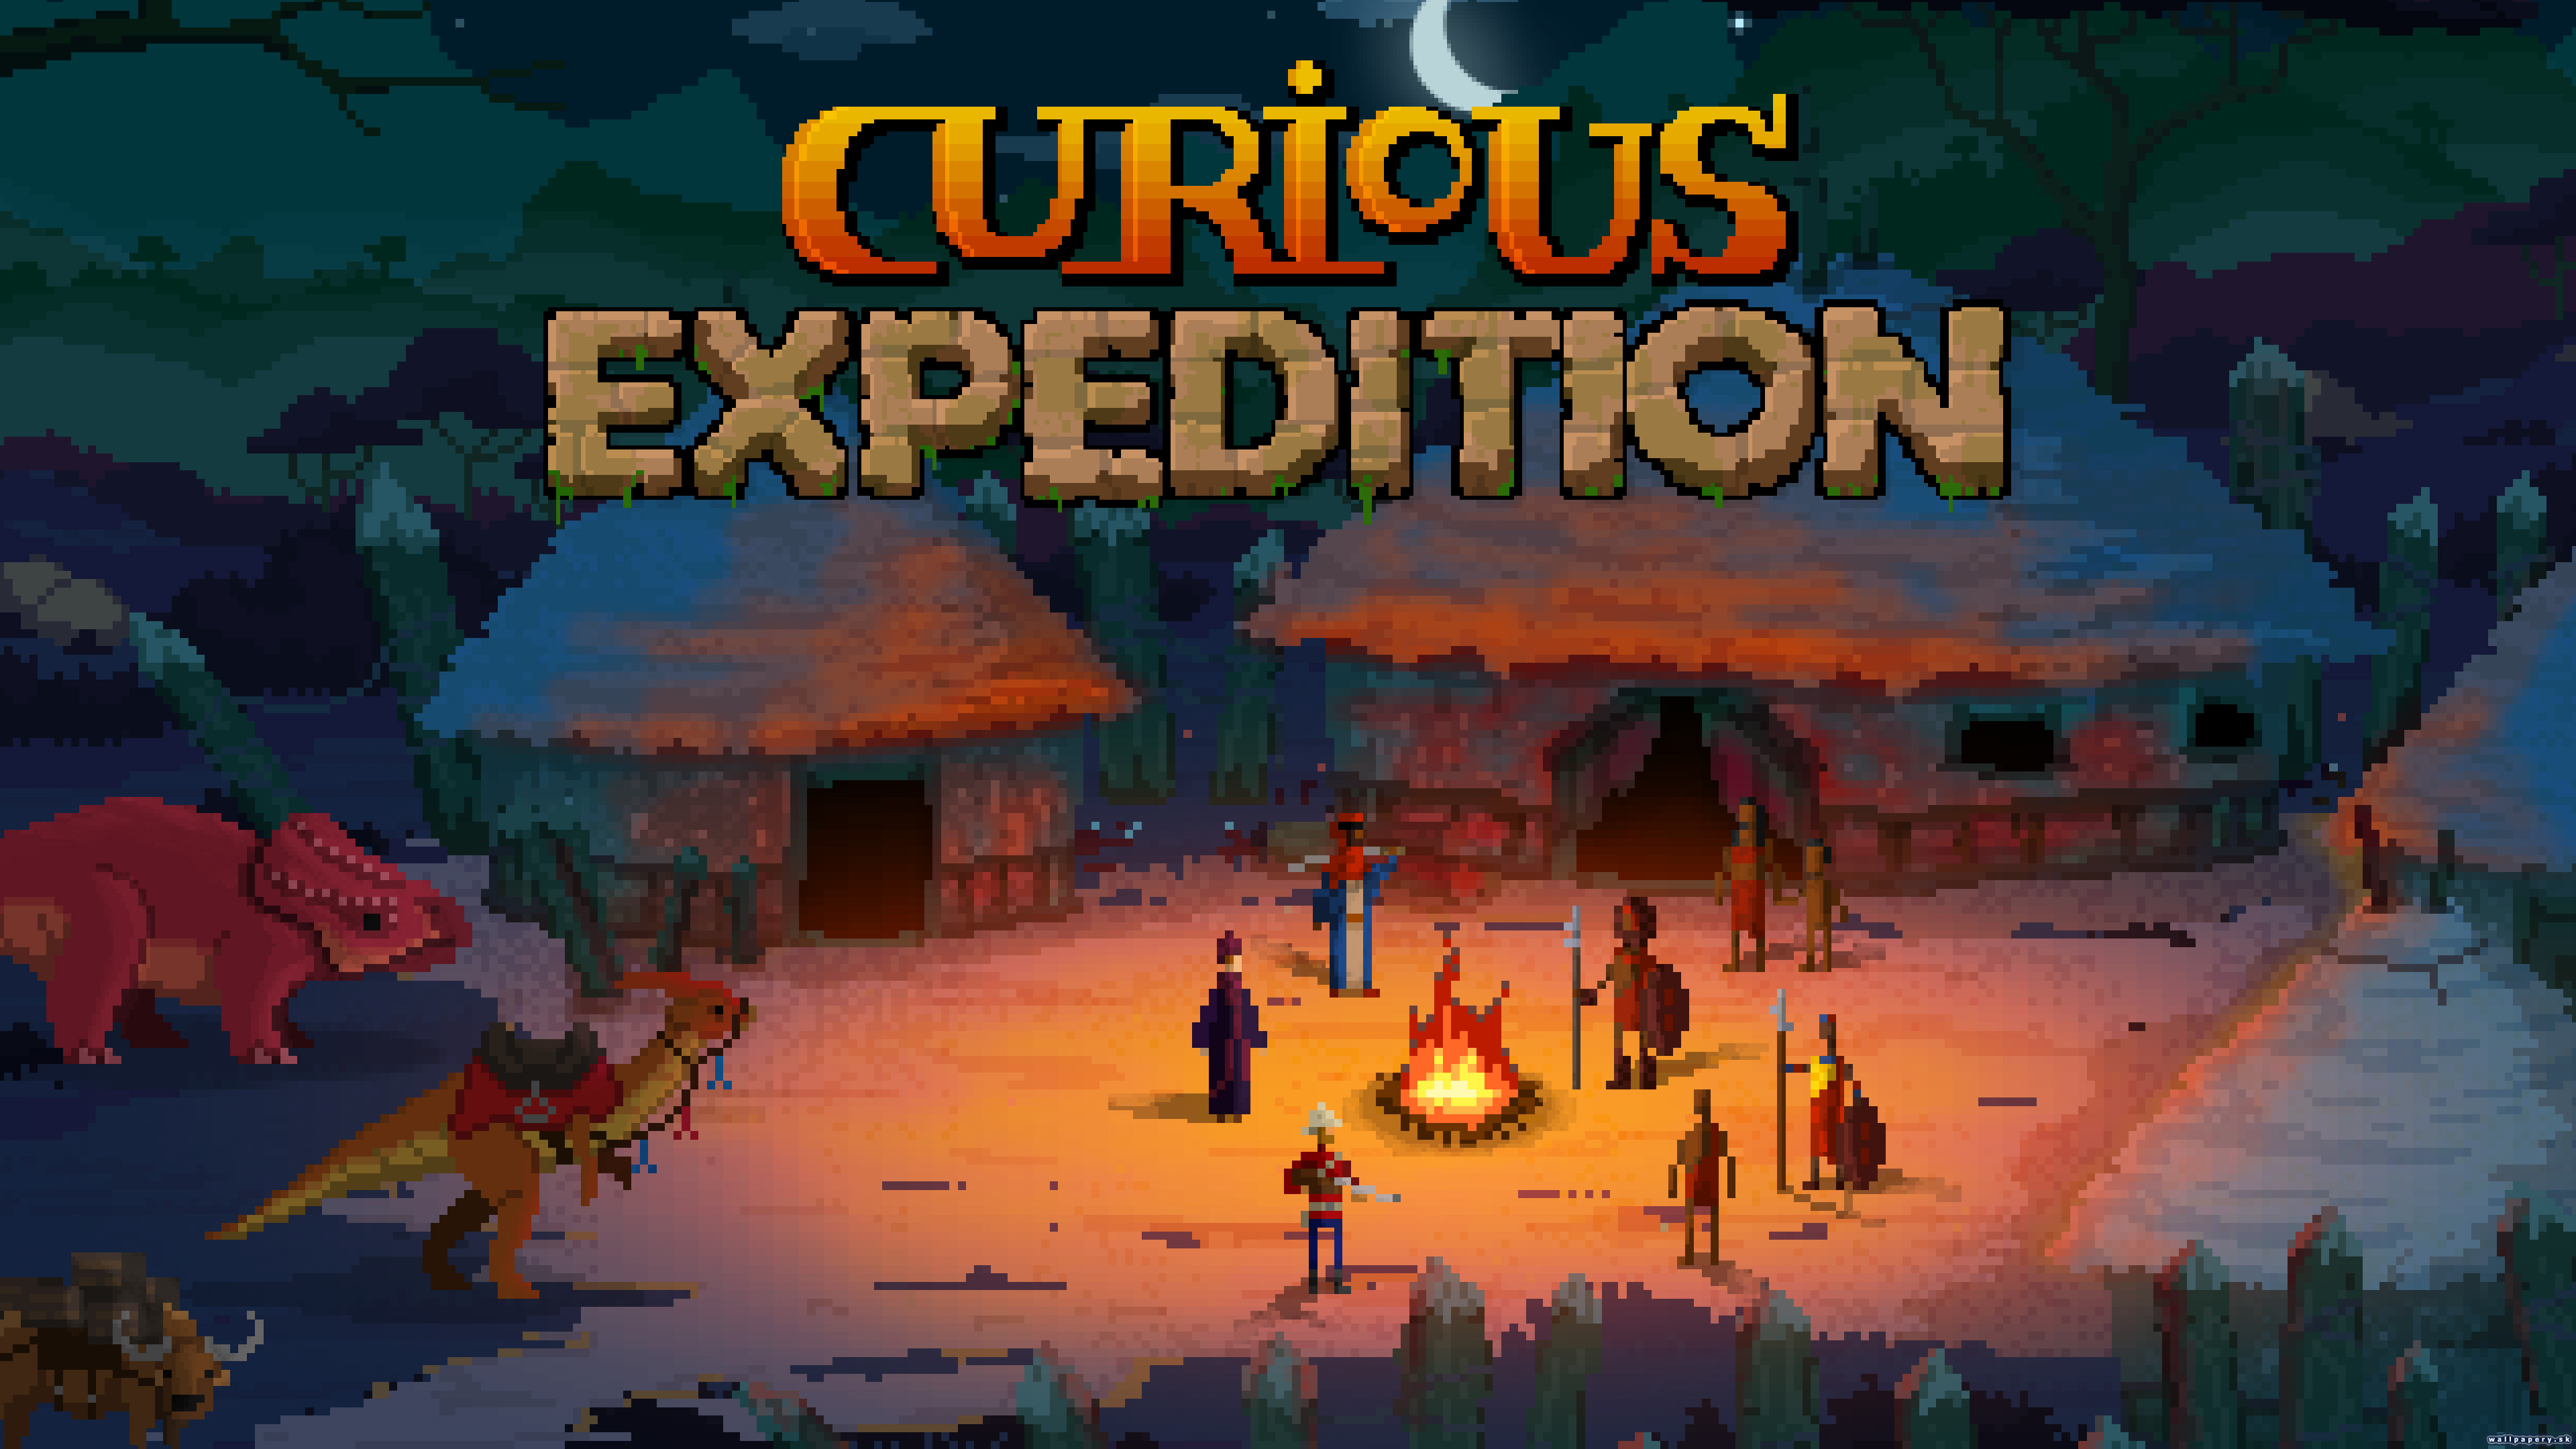 Curious Expedition - wallpaper 2